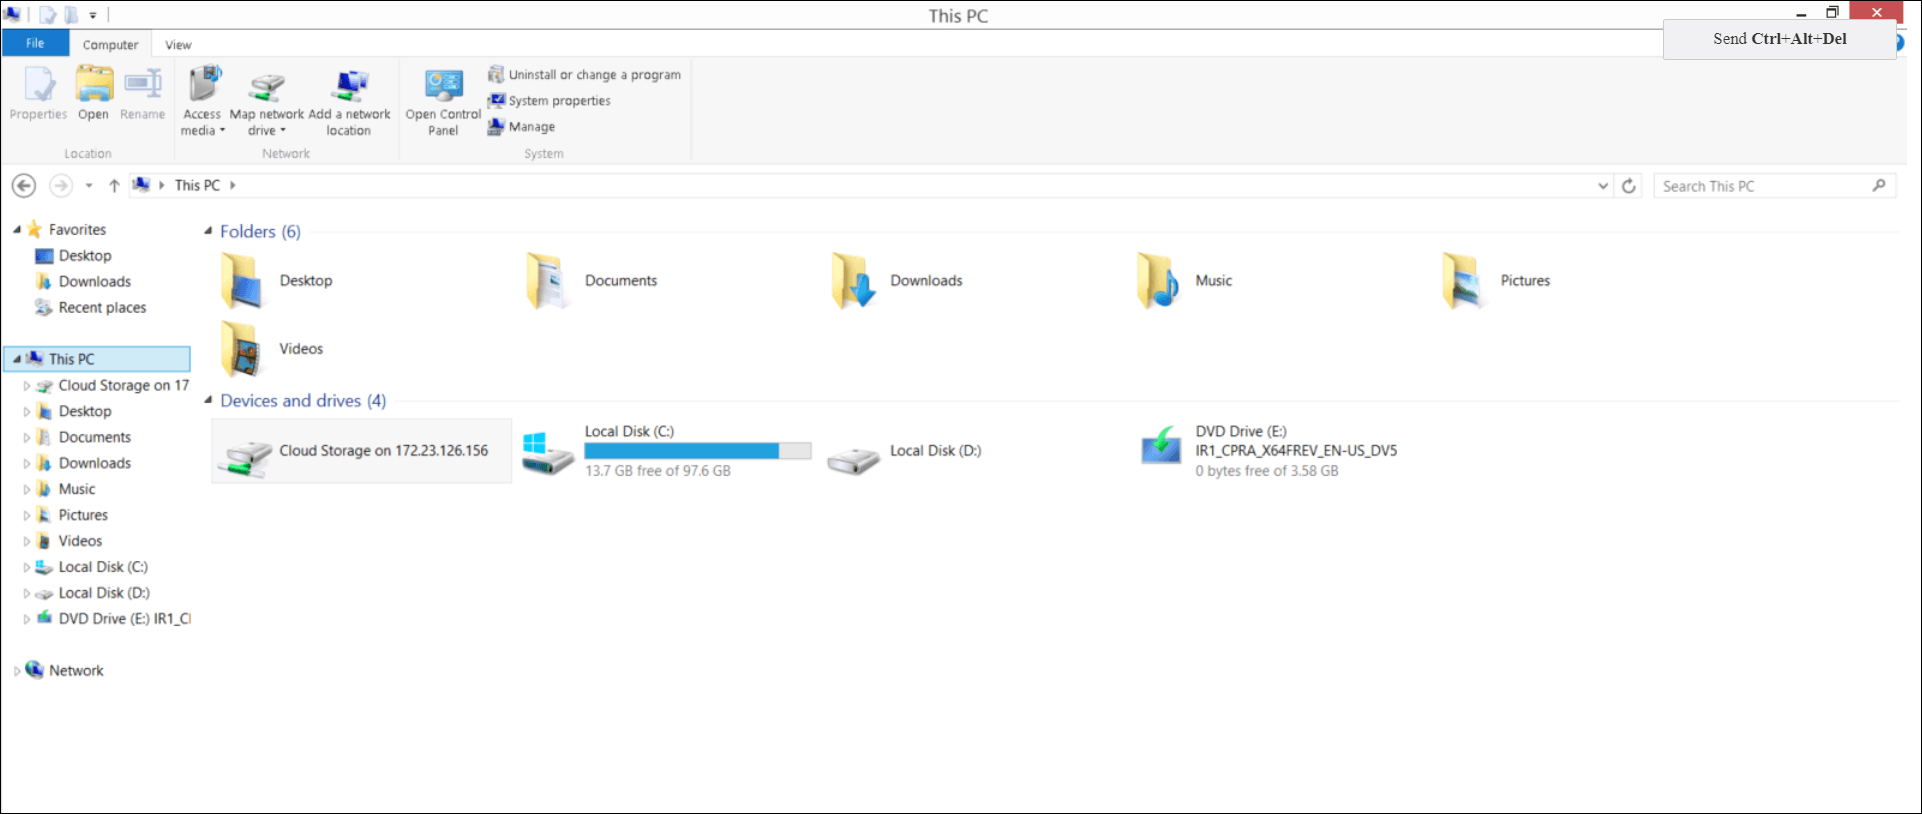 Remote File Transfer During Windows RDP Sessions